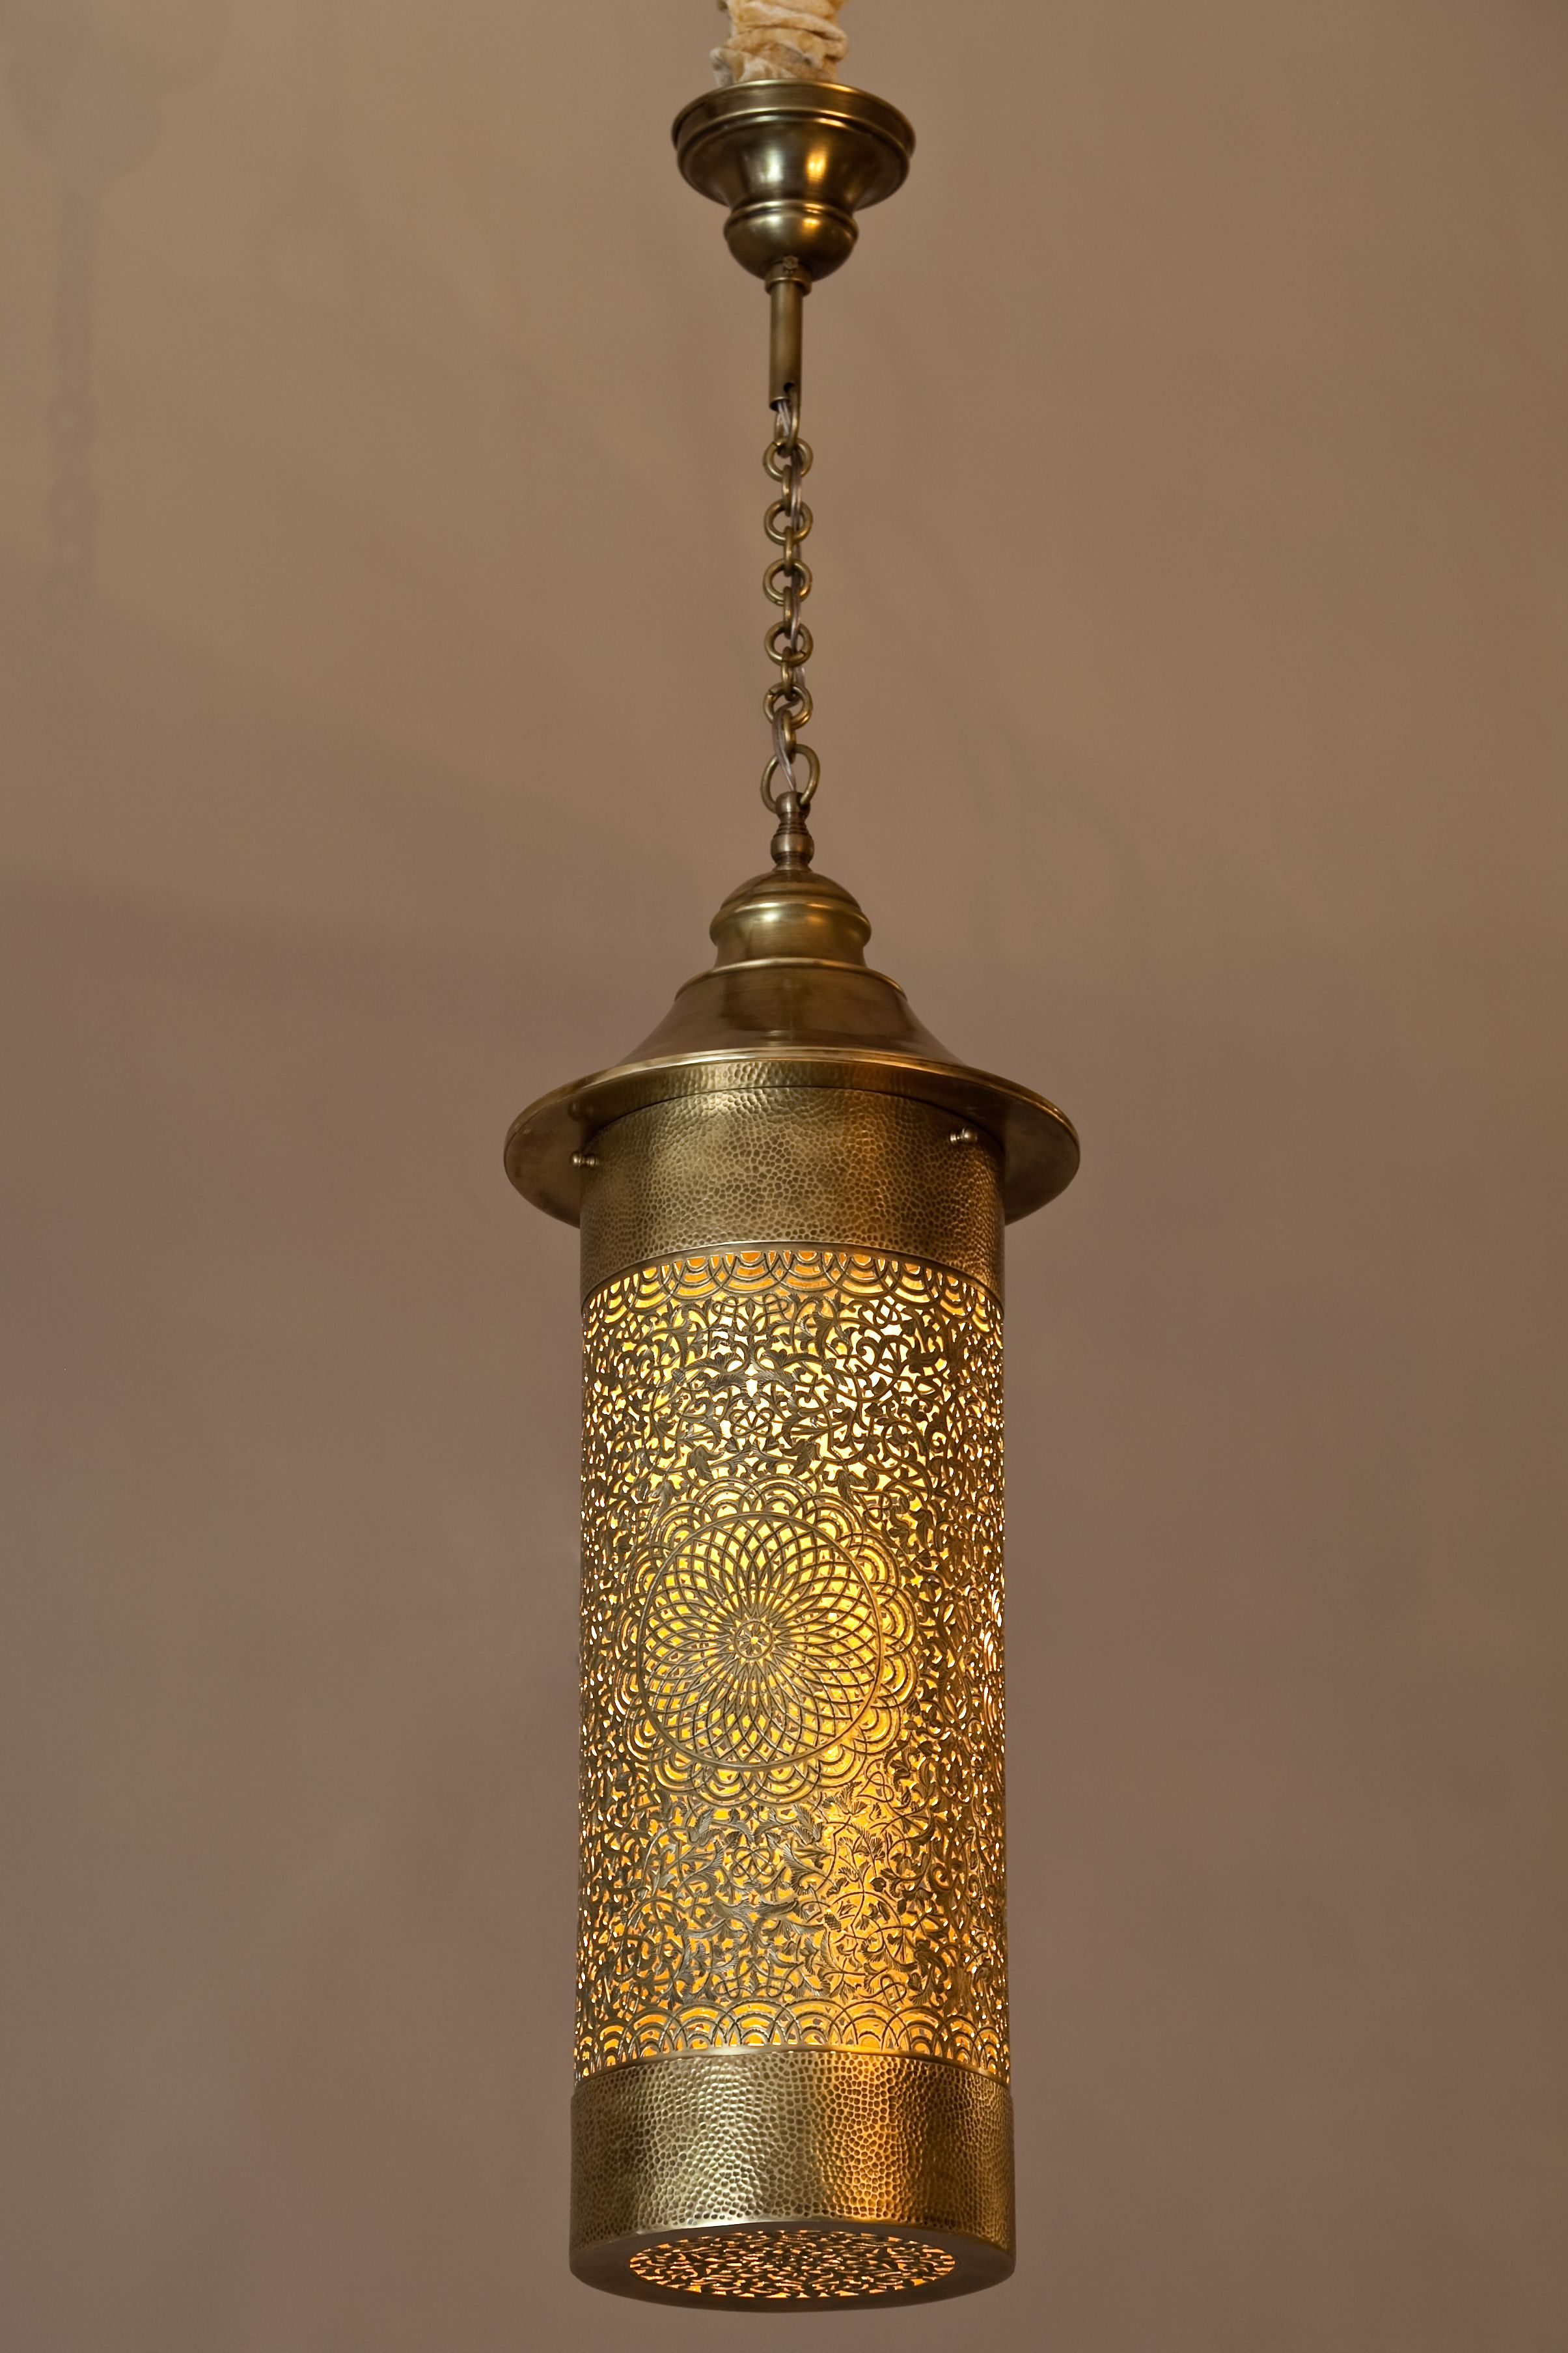 Unique Moroccan Lighting Wwwmycraftworkcom